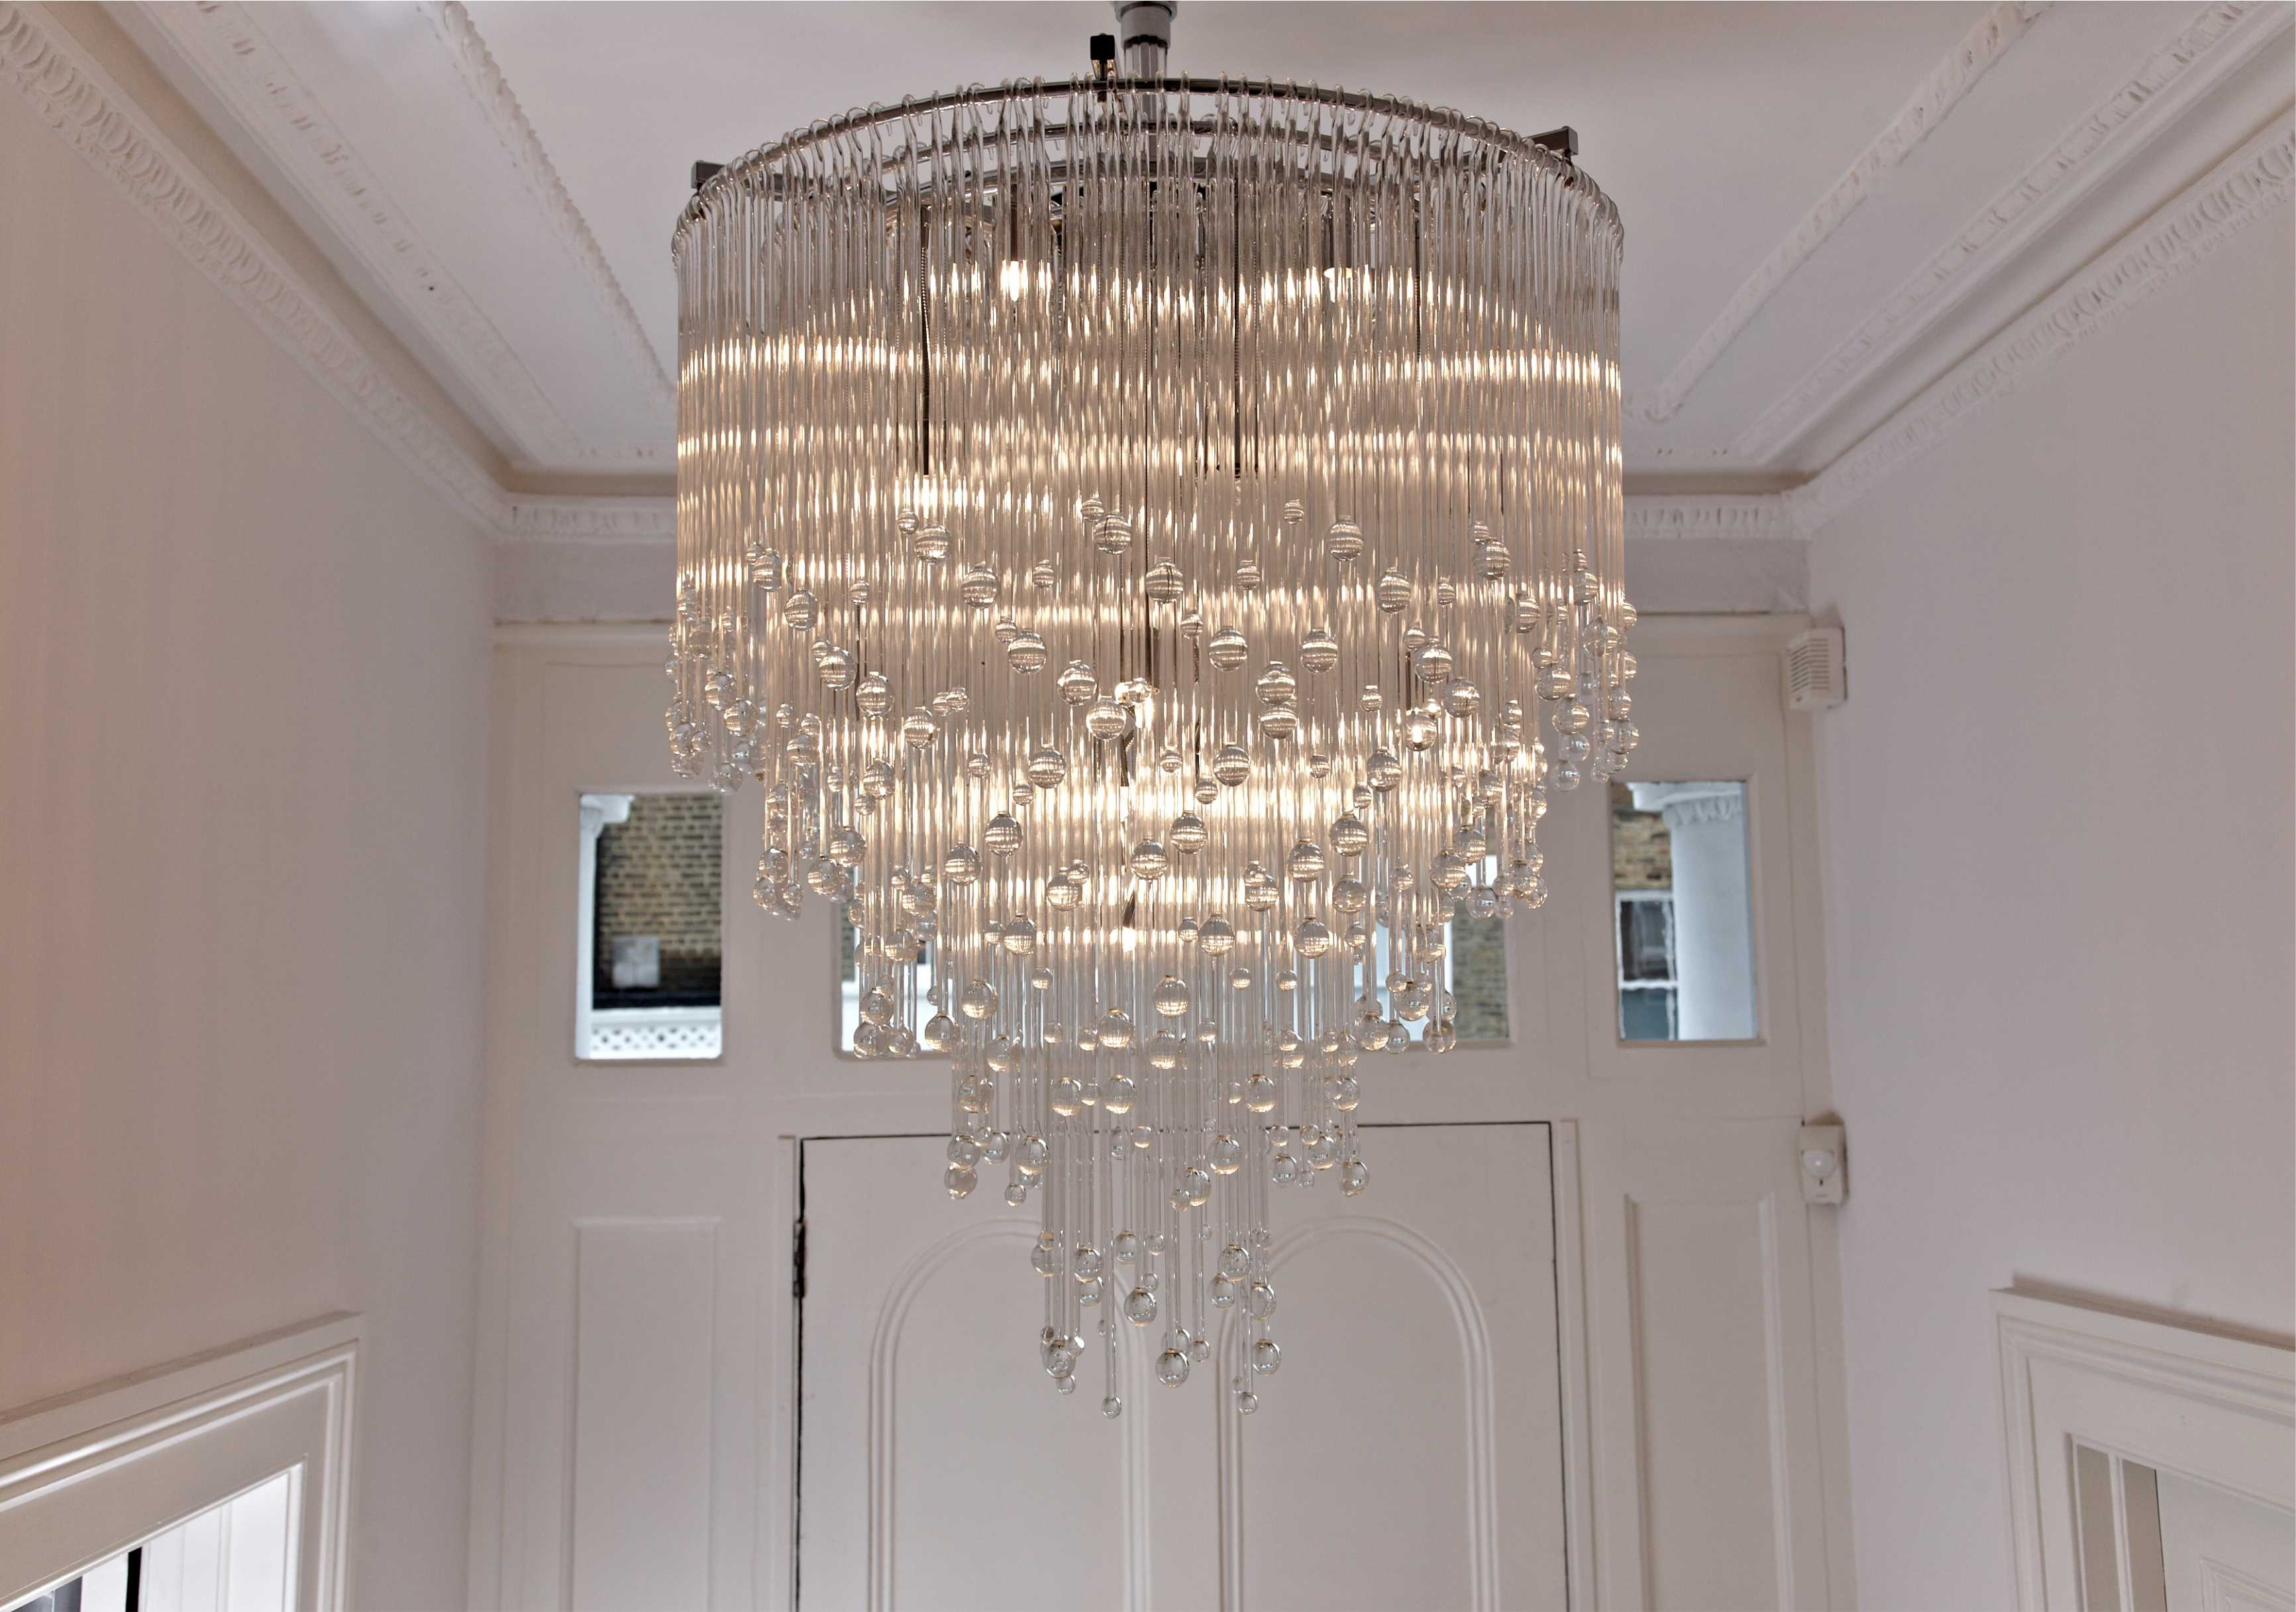 7 Useful Tips To Install Extra Large Modern Chandeliers Shining Pertaining To Large Chandeliers Modern (View 4 of 15)